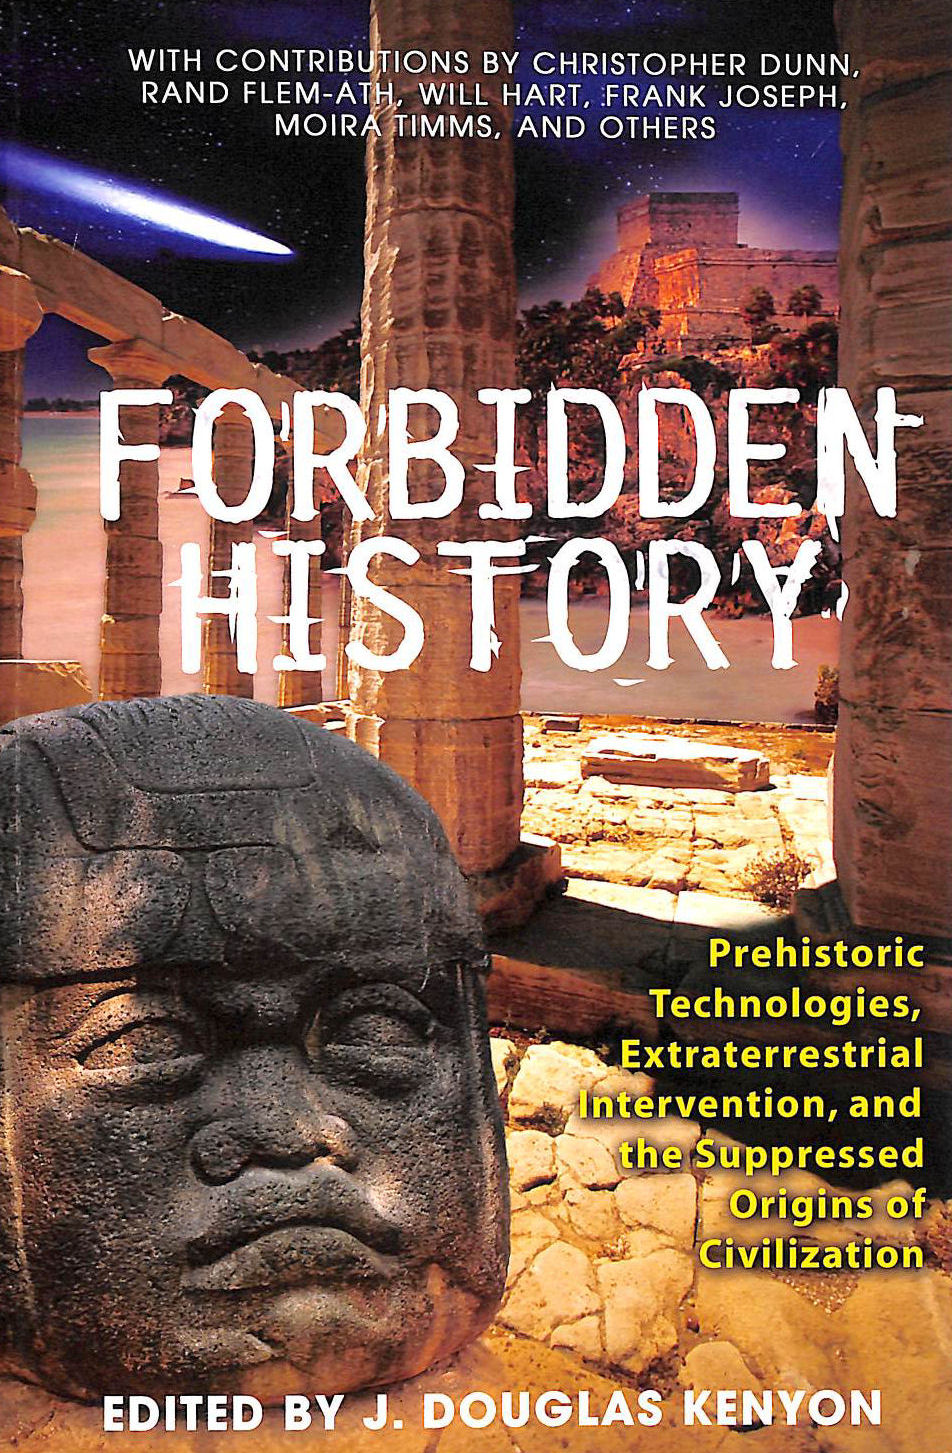 Image for Forbidden History: Prehistoric Technologies, Extraterrestrial Intervention, and the Suppressed Origins of Civilization